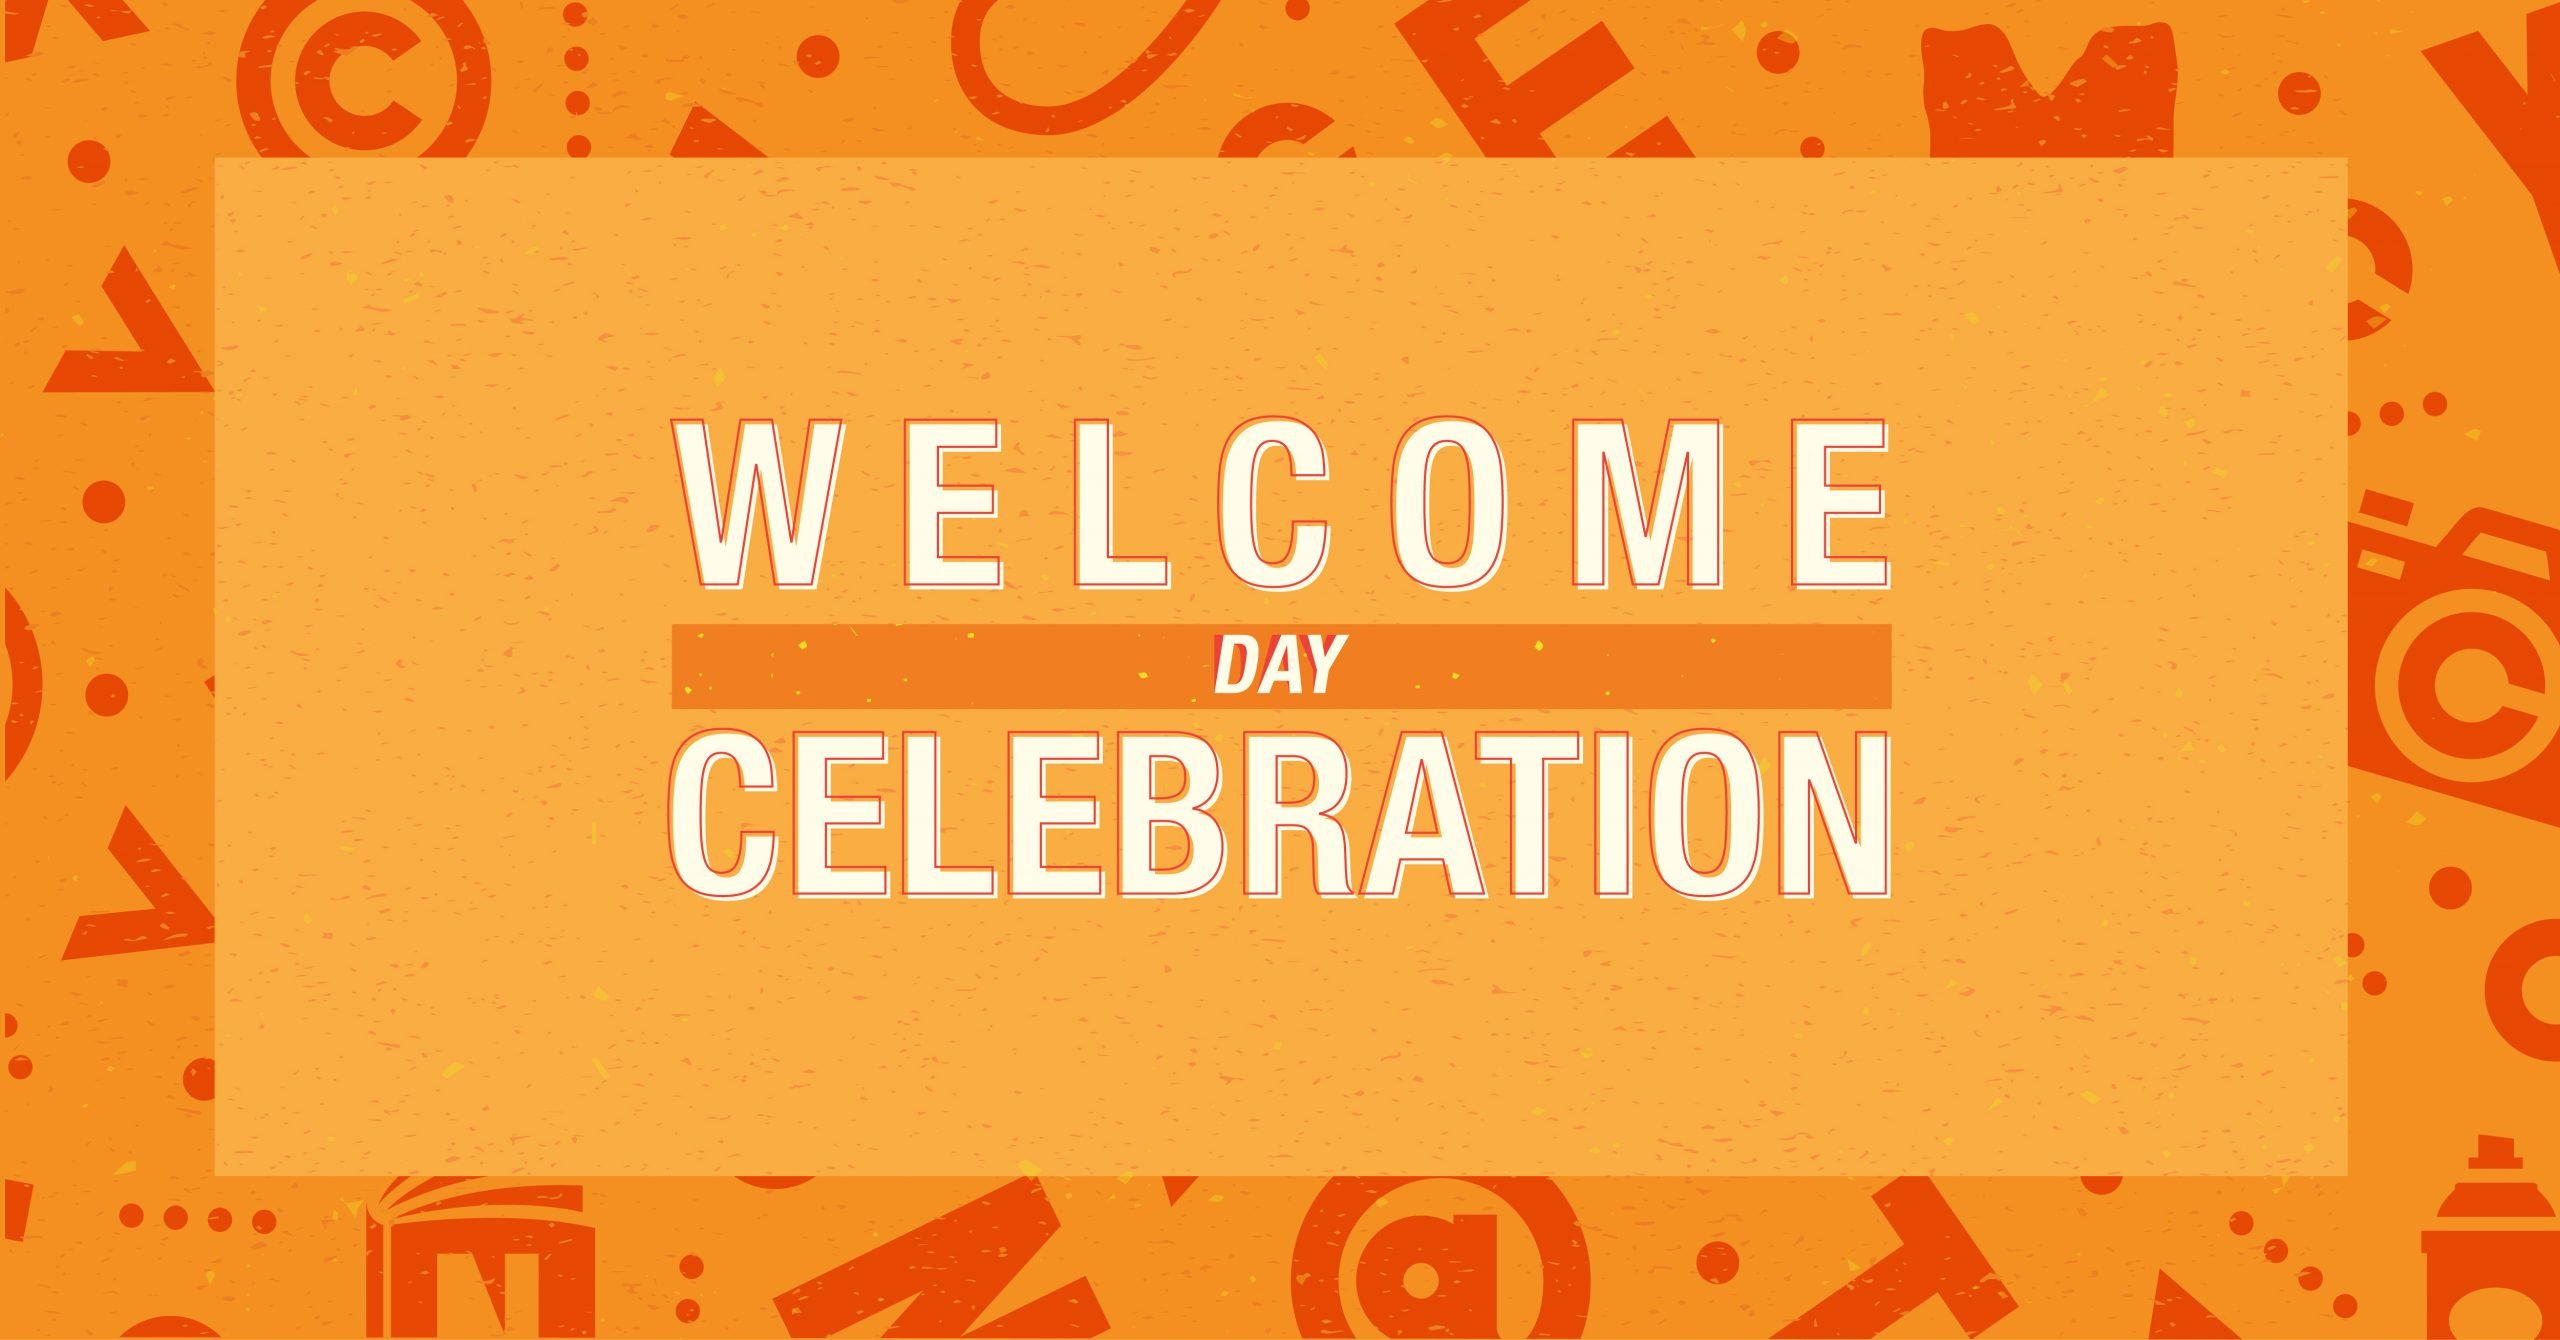 Bright orange image with white text that says Welcome Day Celebration